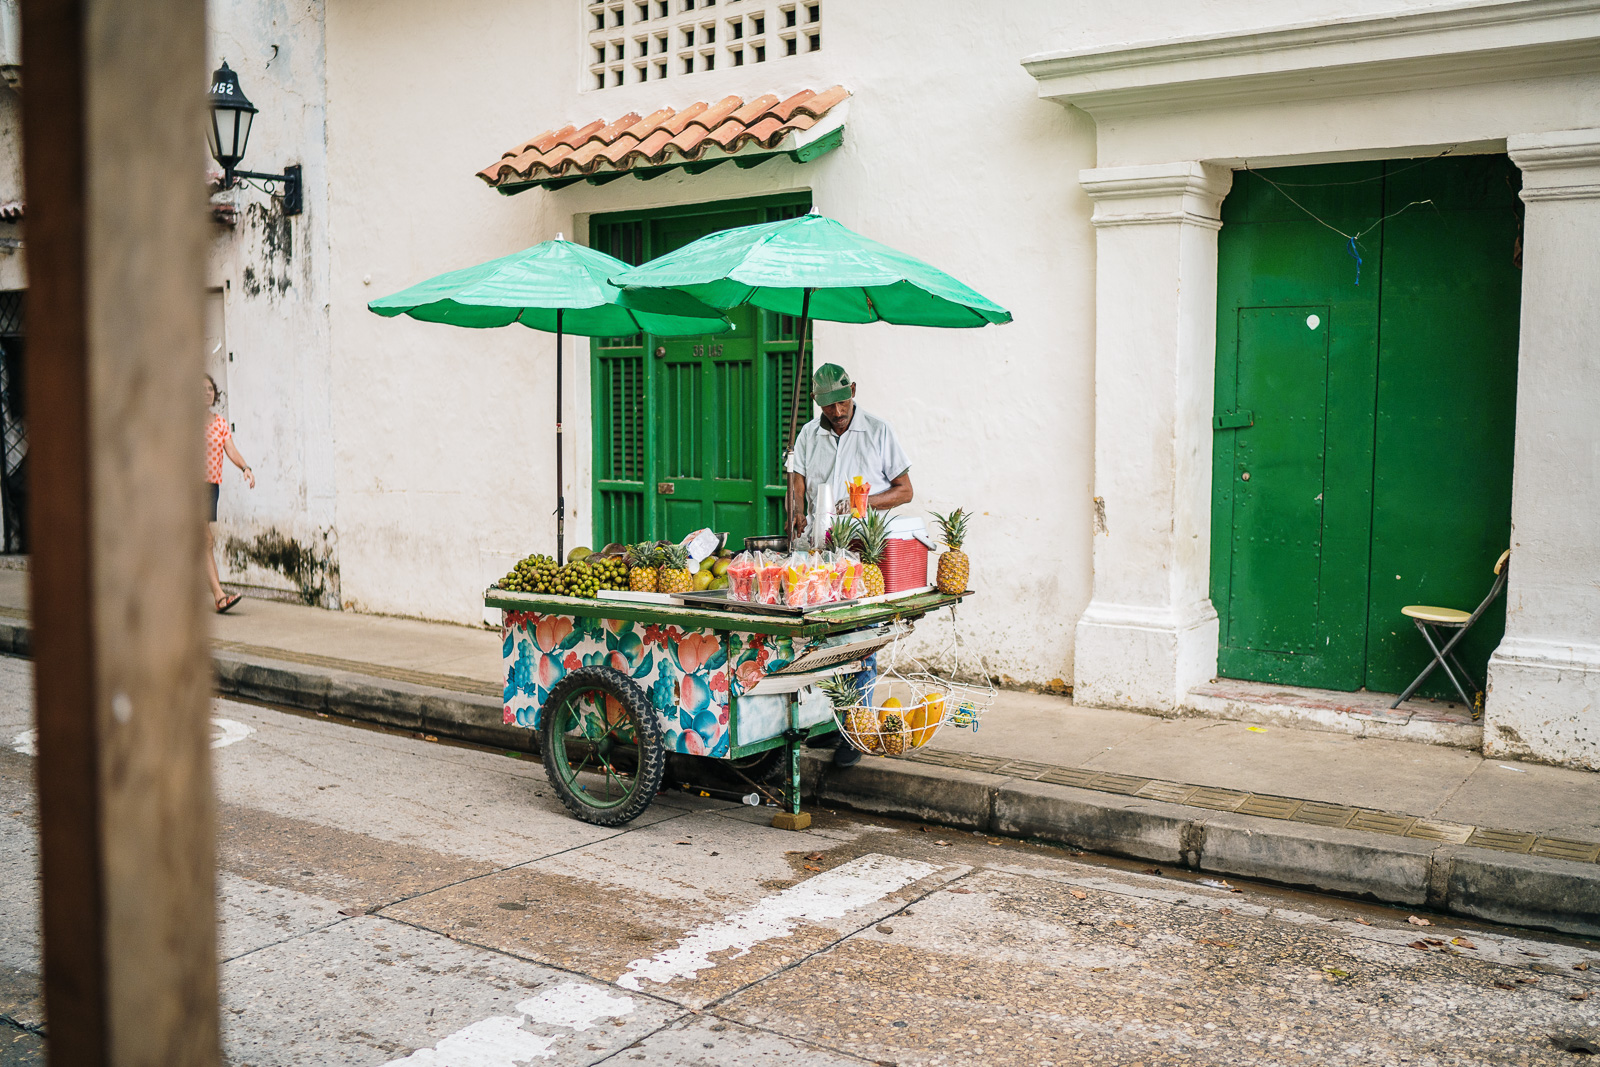 fruit seller in south america